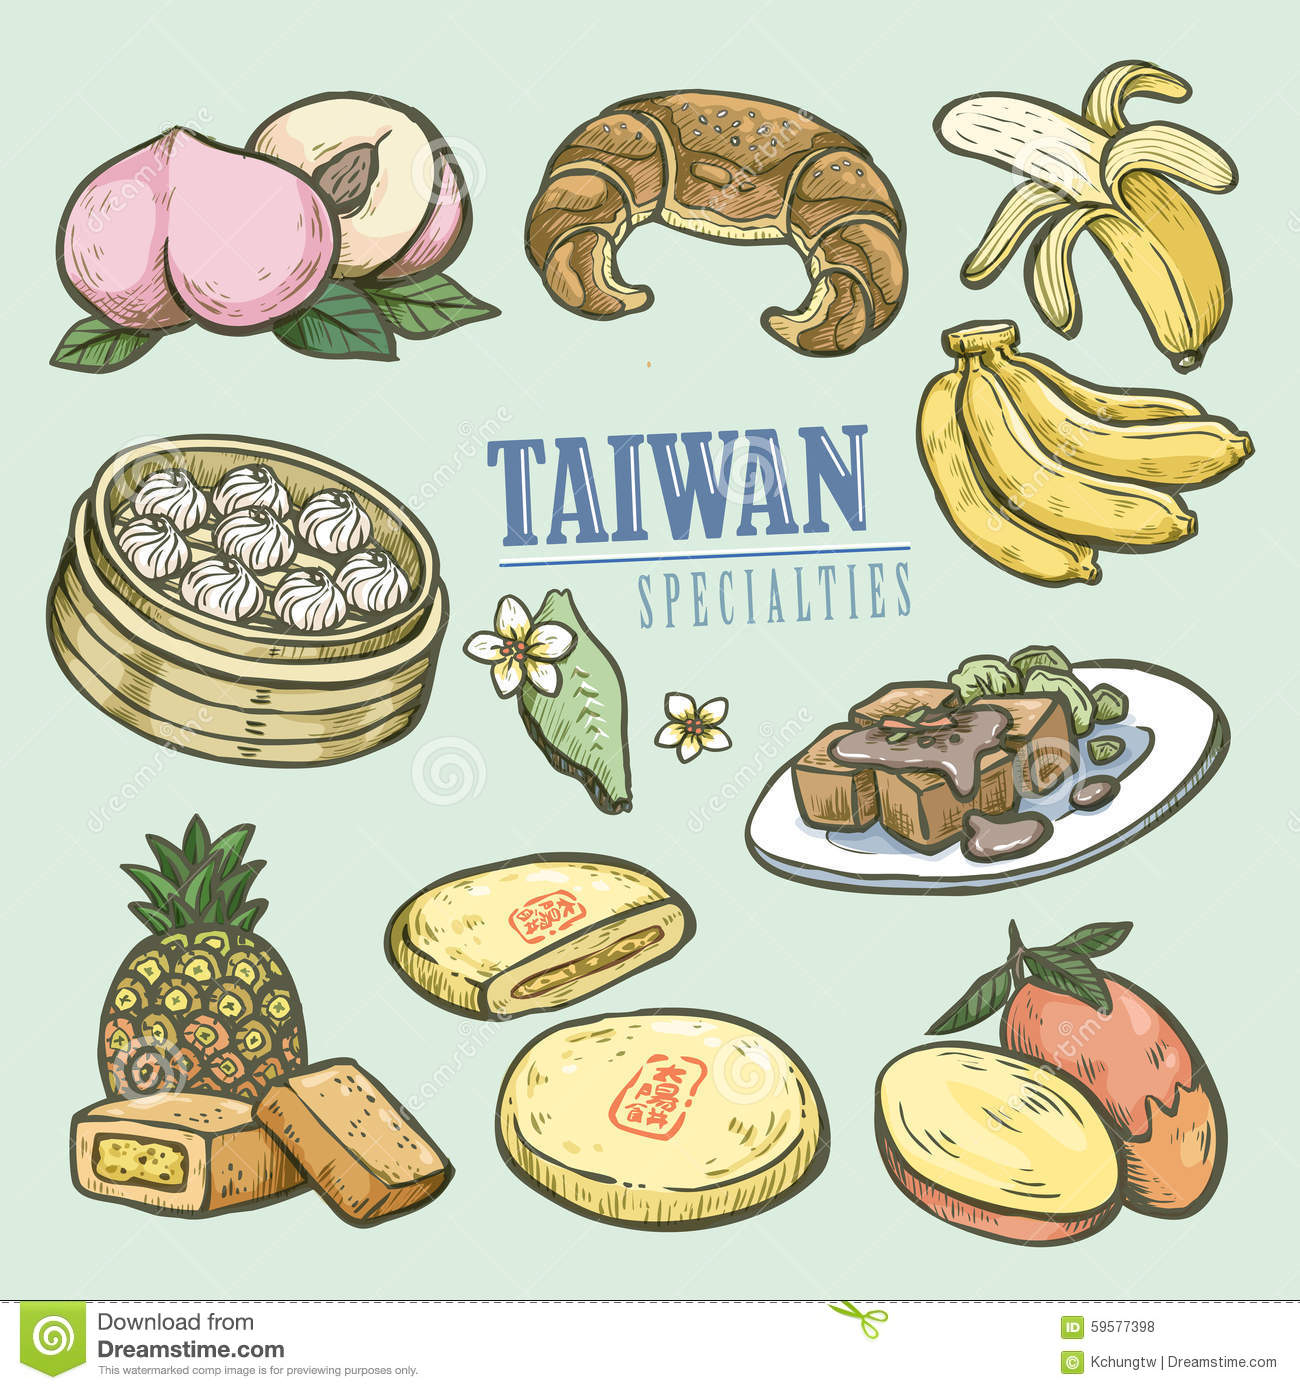 exquisite taiwan specialties collection stock vector